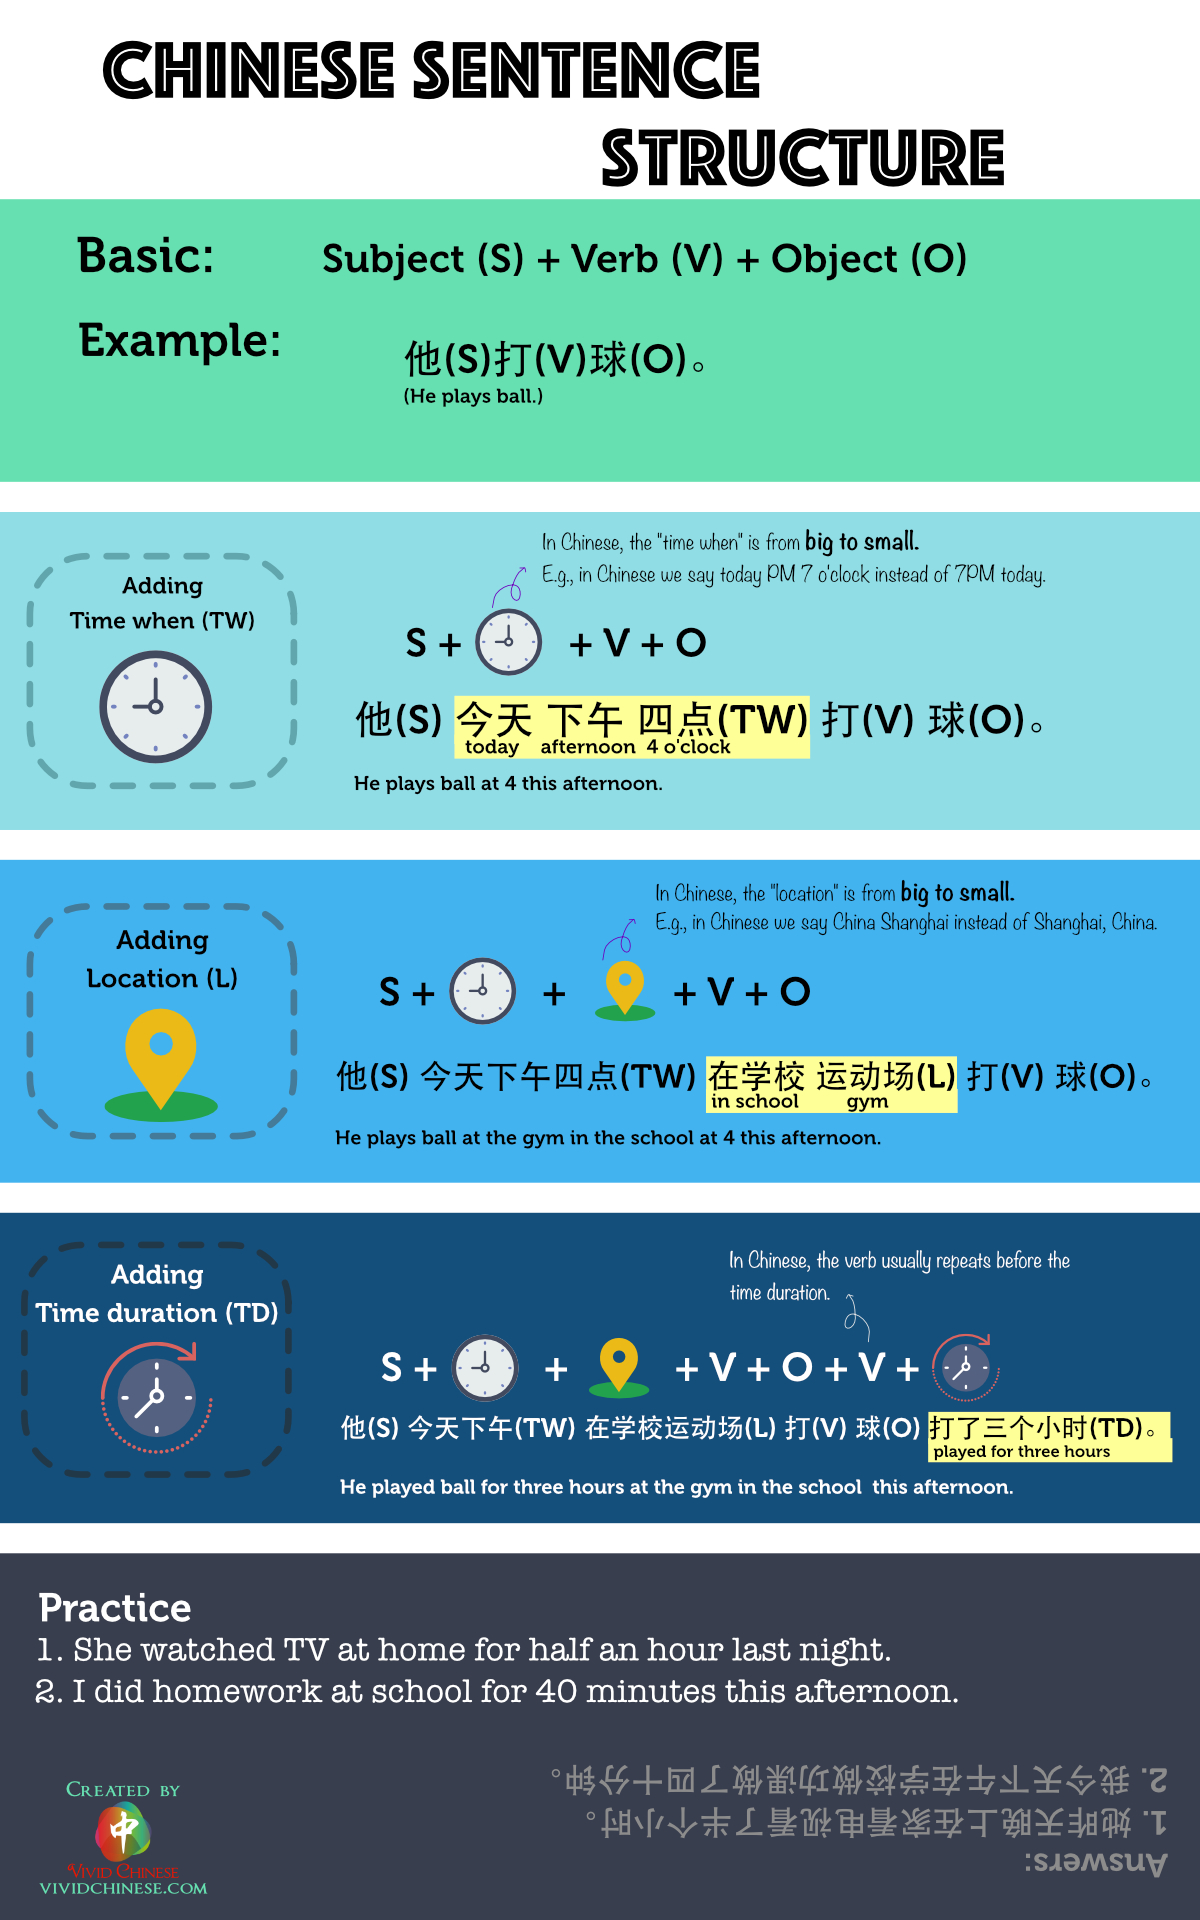 Chinese Sentence Sturcture Simplified Chinese Version Infographic